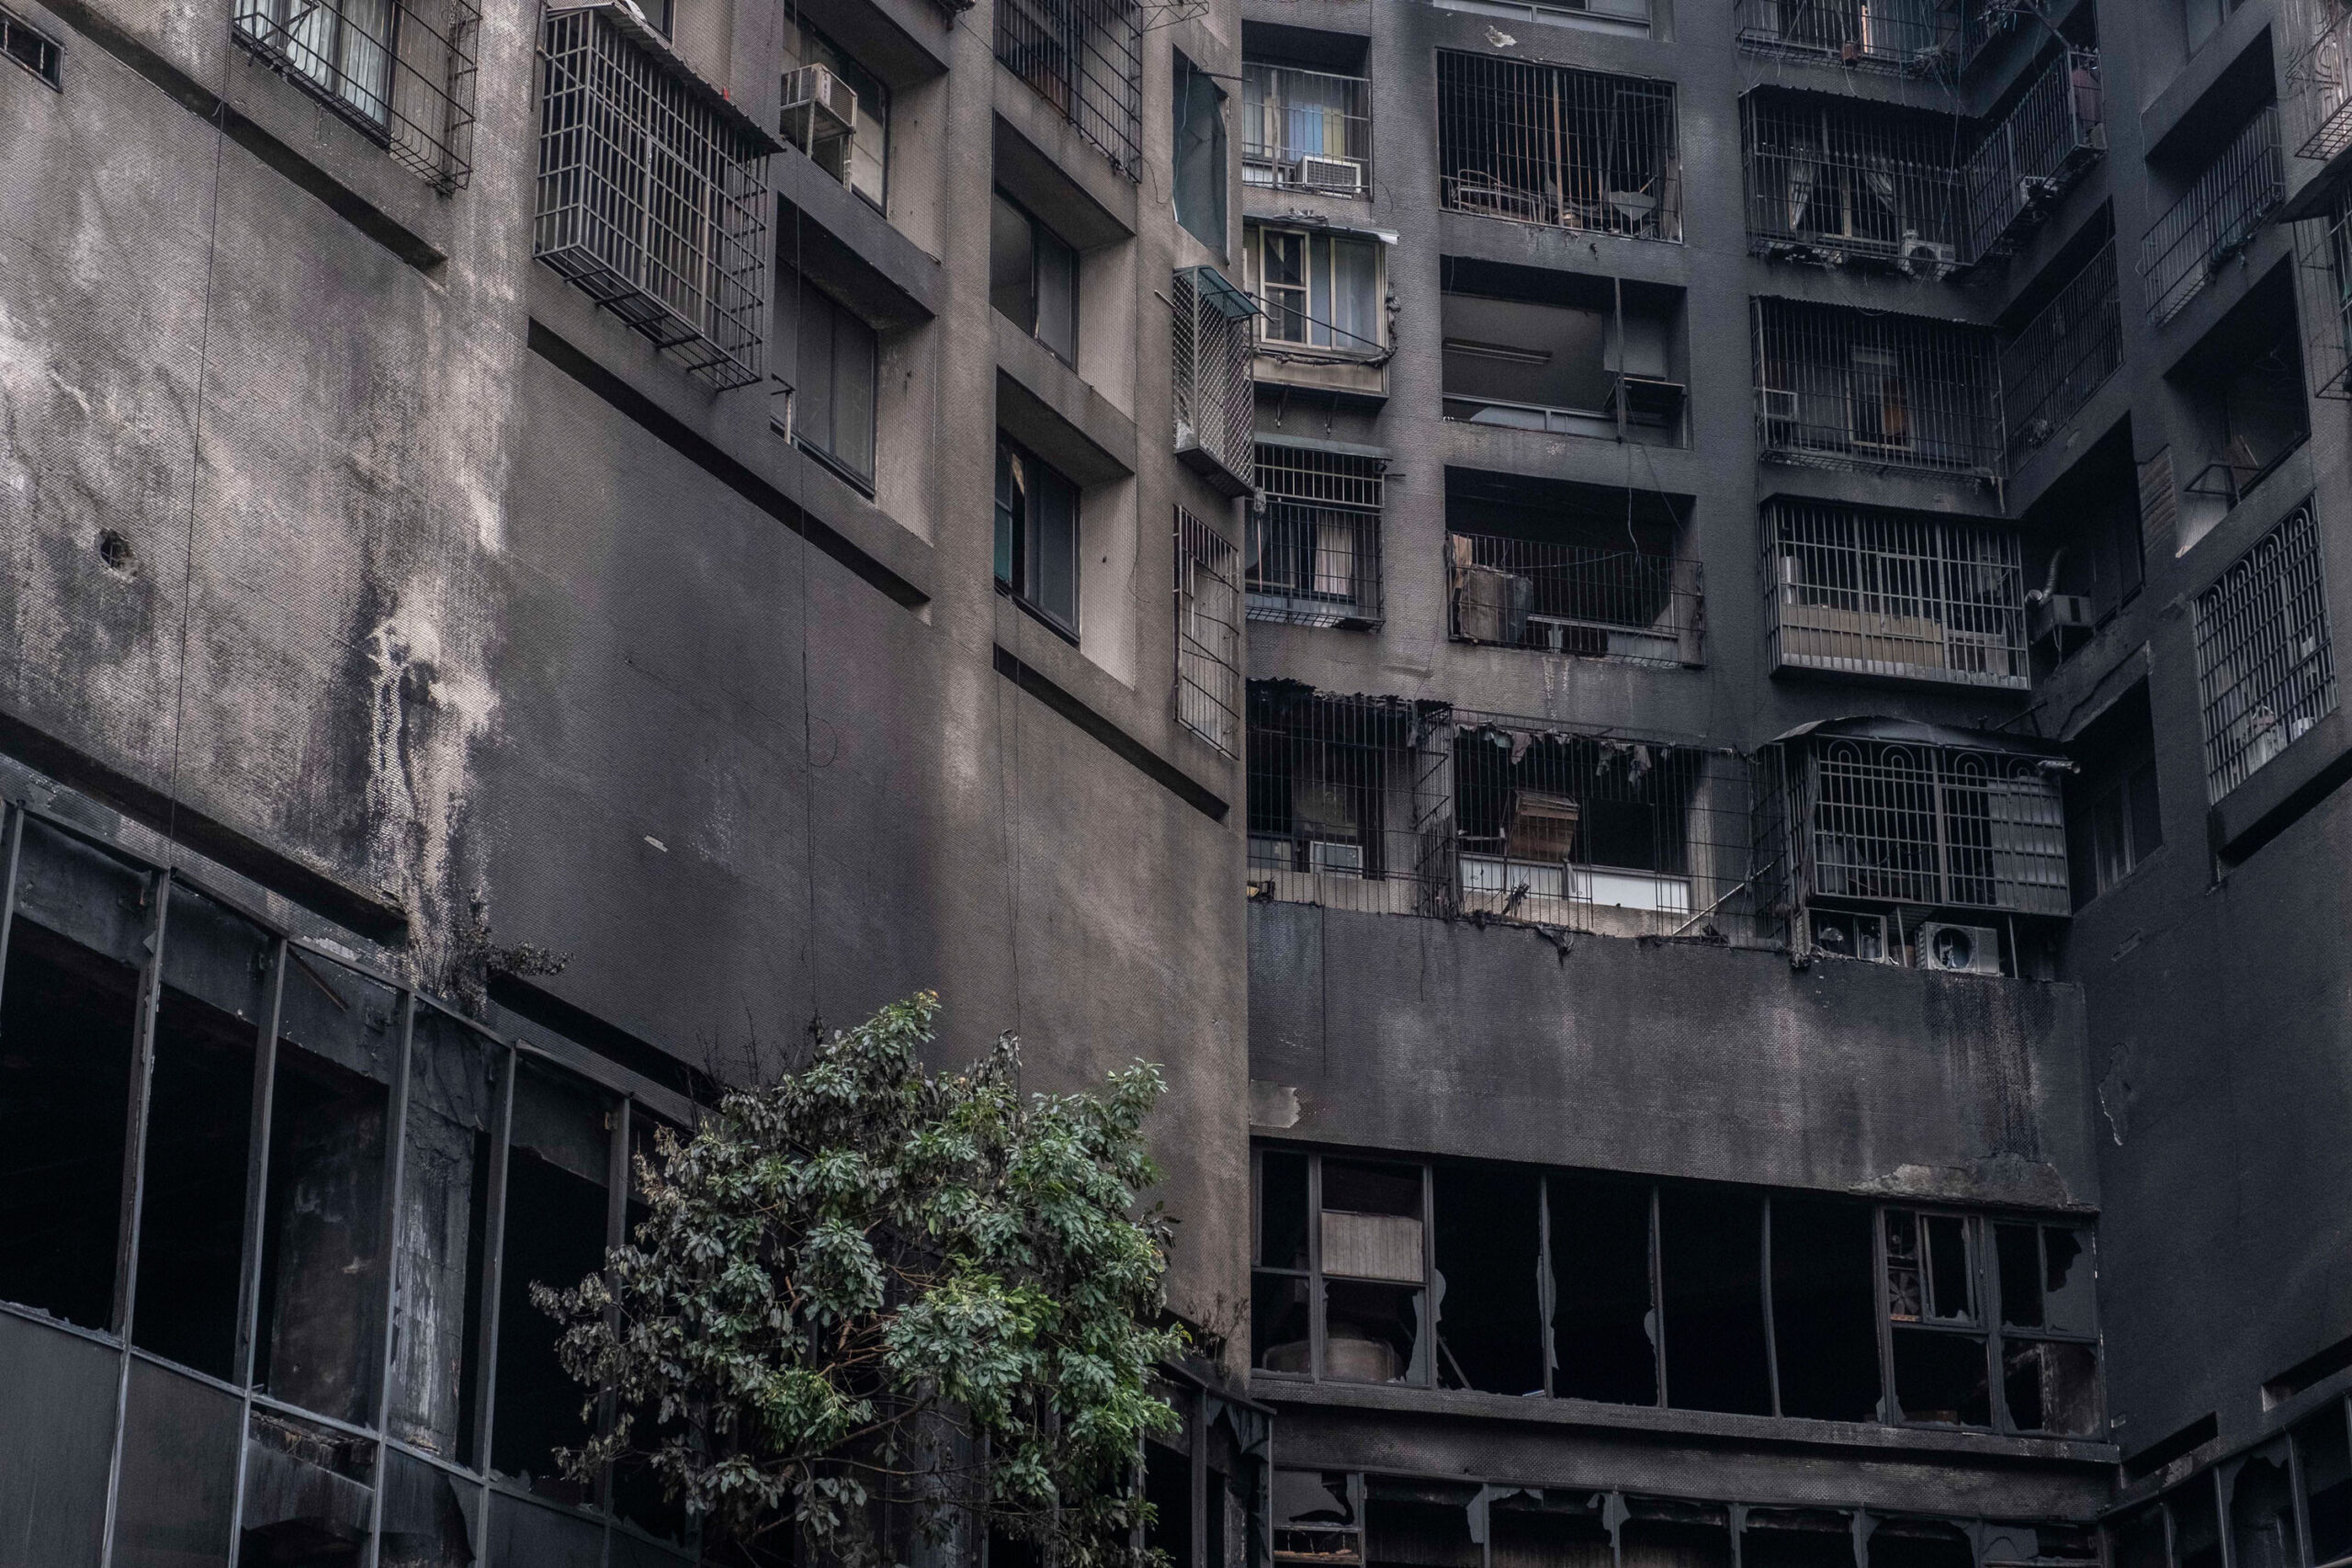 <i>Lam Yik Fei/Getty Images</i><br/>The exterior walls of a residential building stands charred in the wake of a fire on October 14